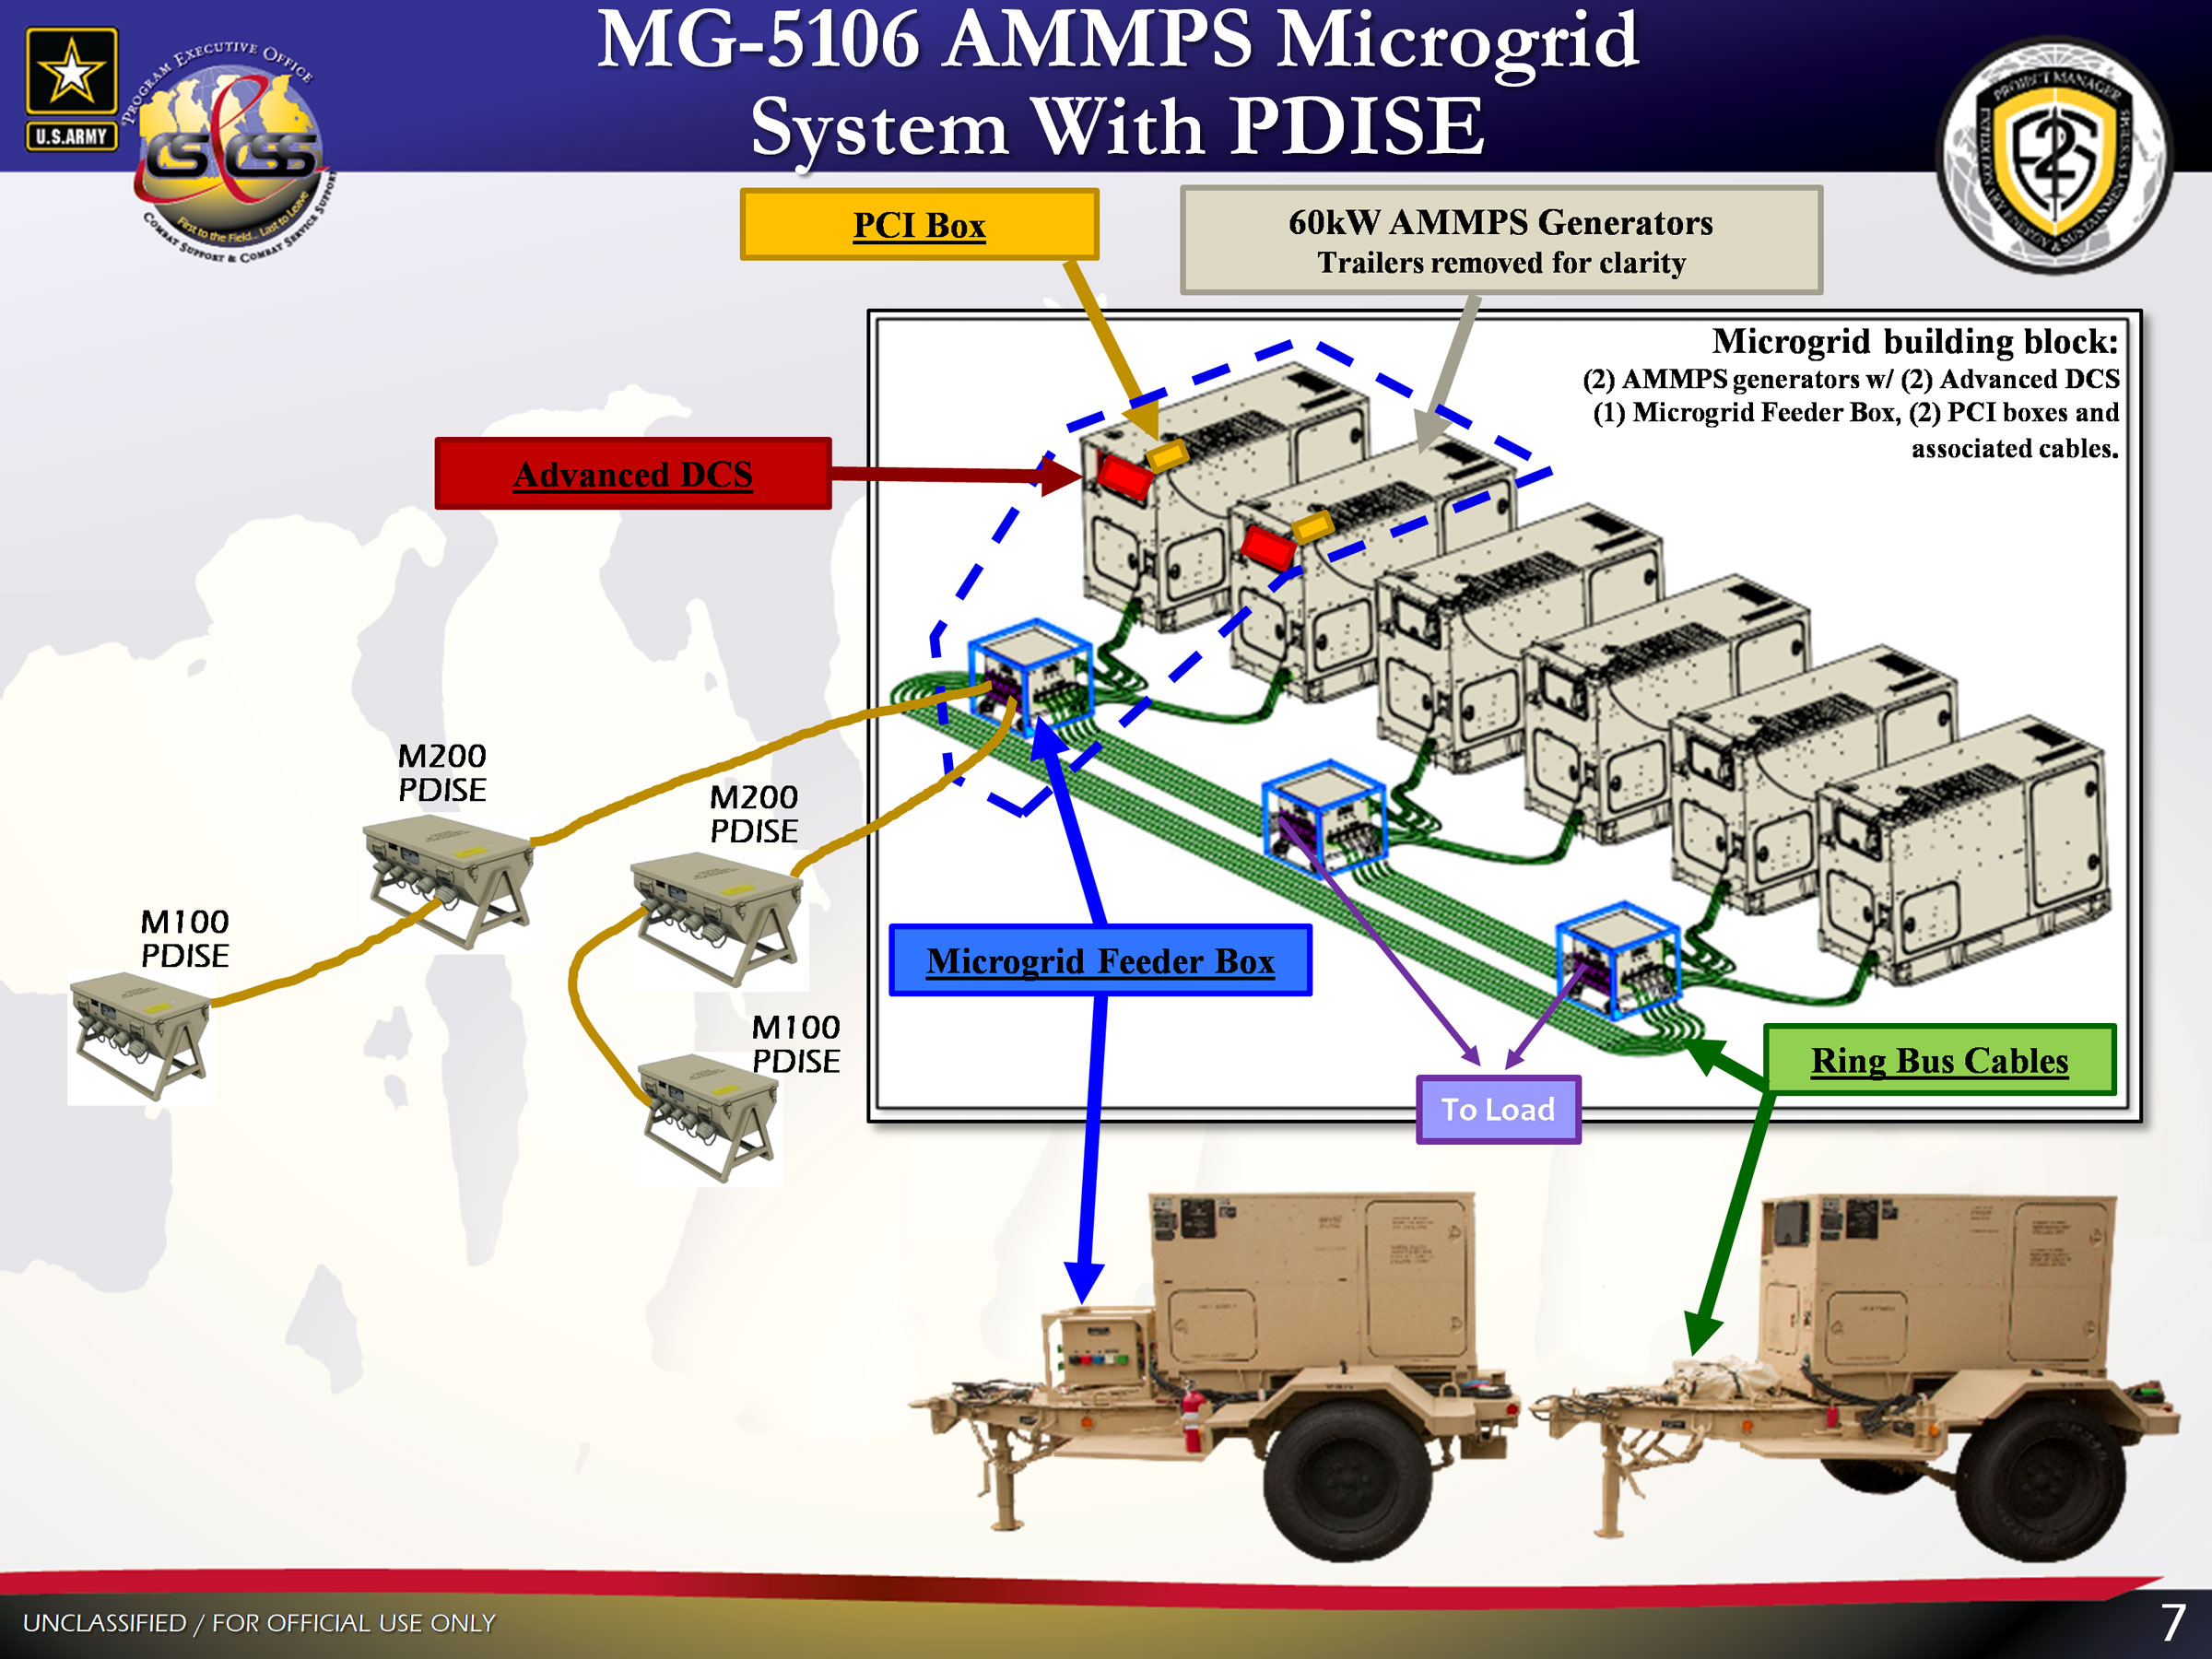 Advanced Medium Mobile Power Source (AMMPS) Microgrid with PDISE